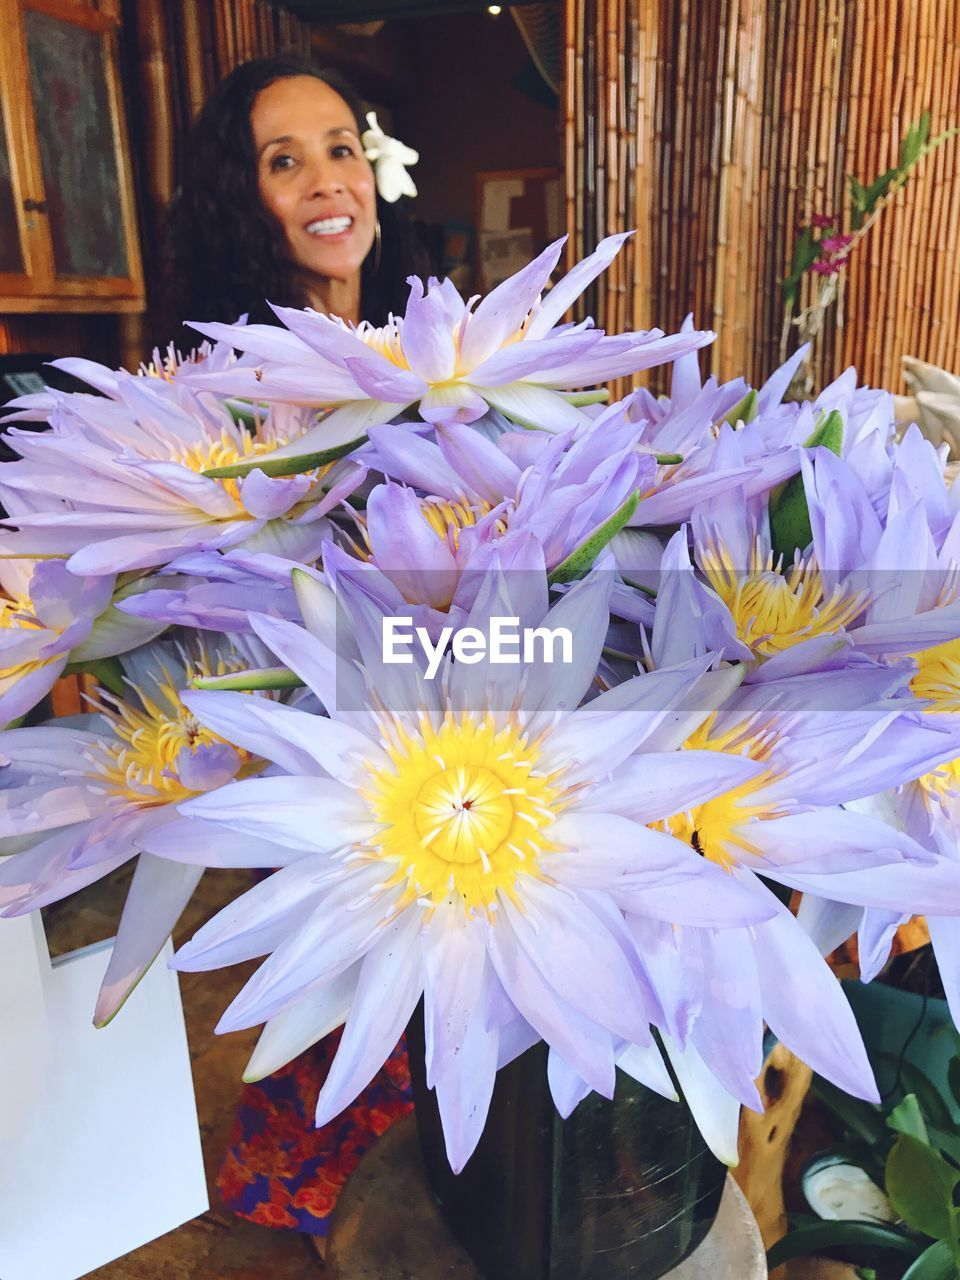 flower, purple, retail, outdoors, real people, looking at camera, smiling, beauty in nature, one person, freshness, happiness, day, nature, fragility, florist, flower head, close-up, people